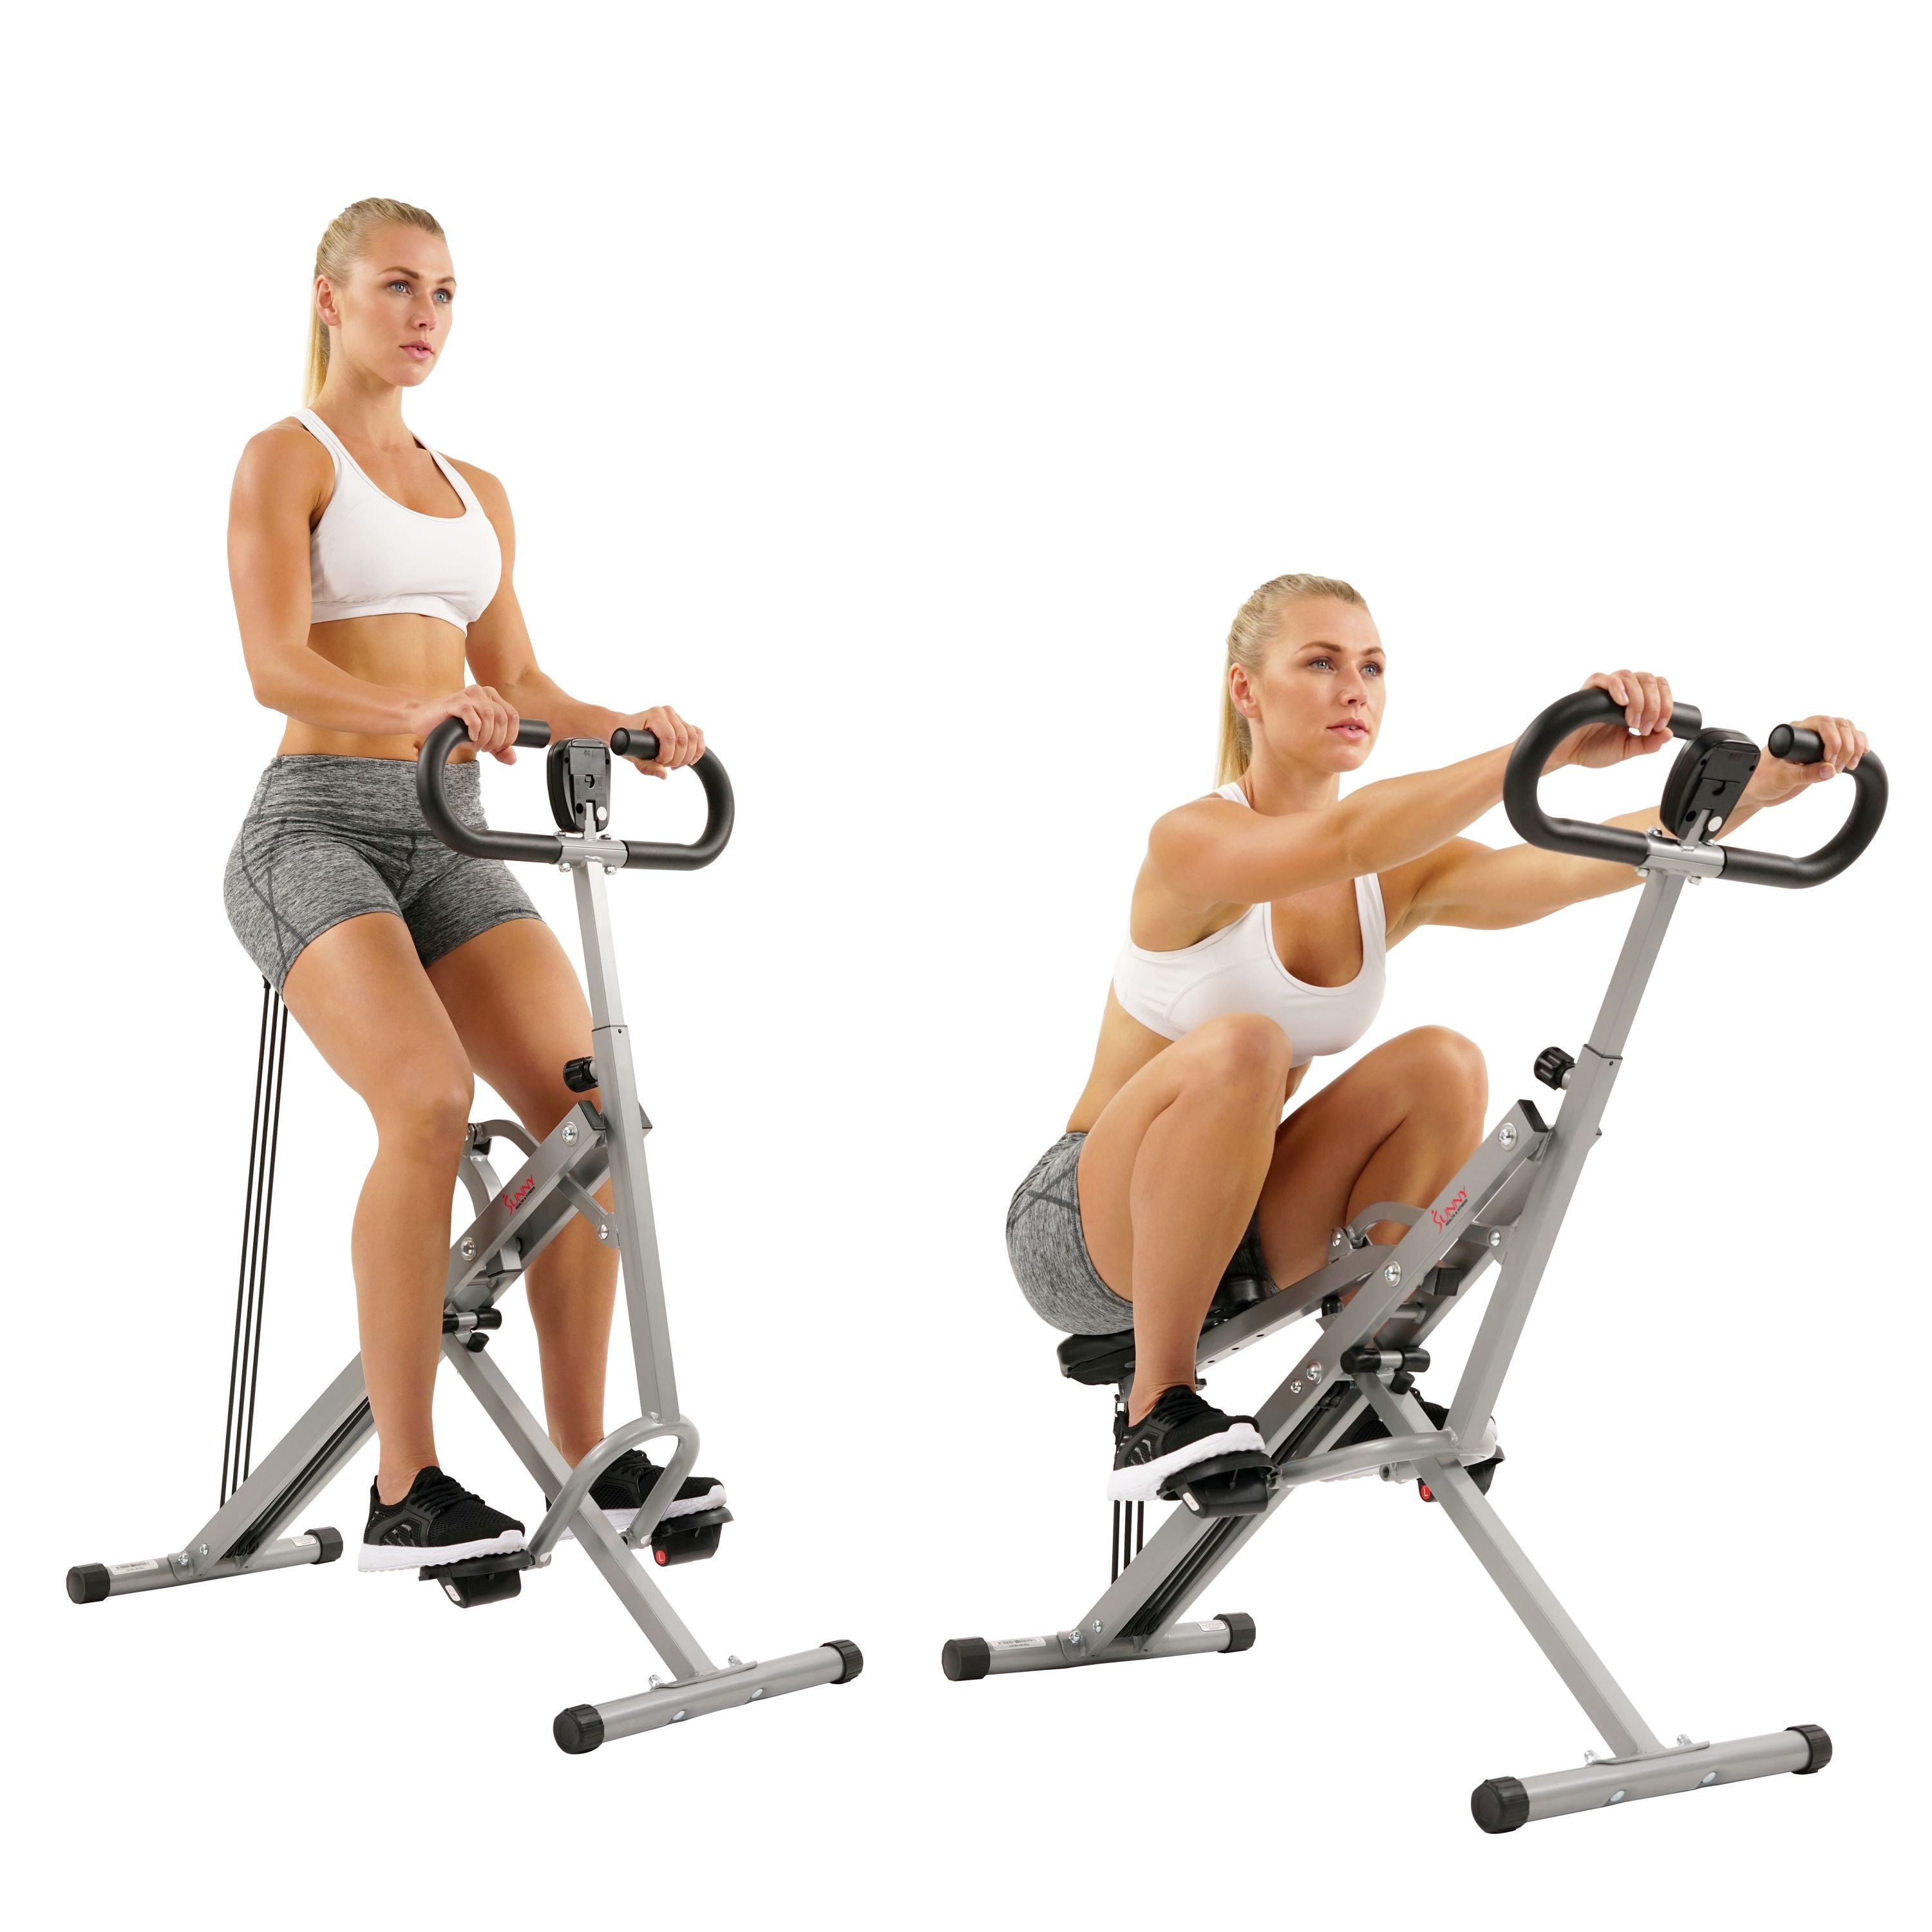 sunny-health-fitness-rowers-upright-row-n-ride-rowing-machine-NO.077-squat